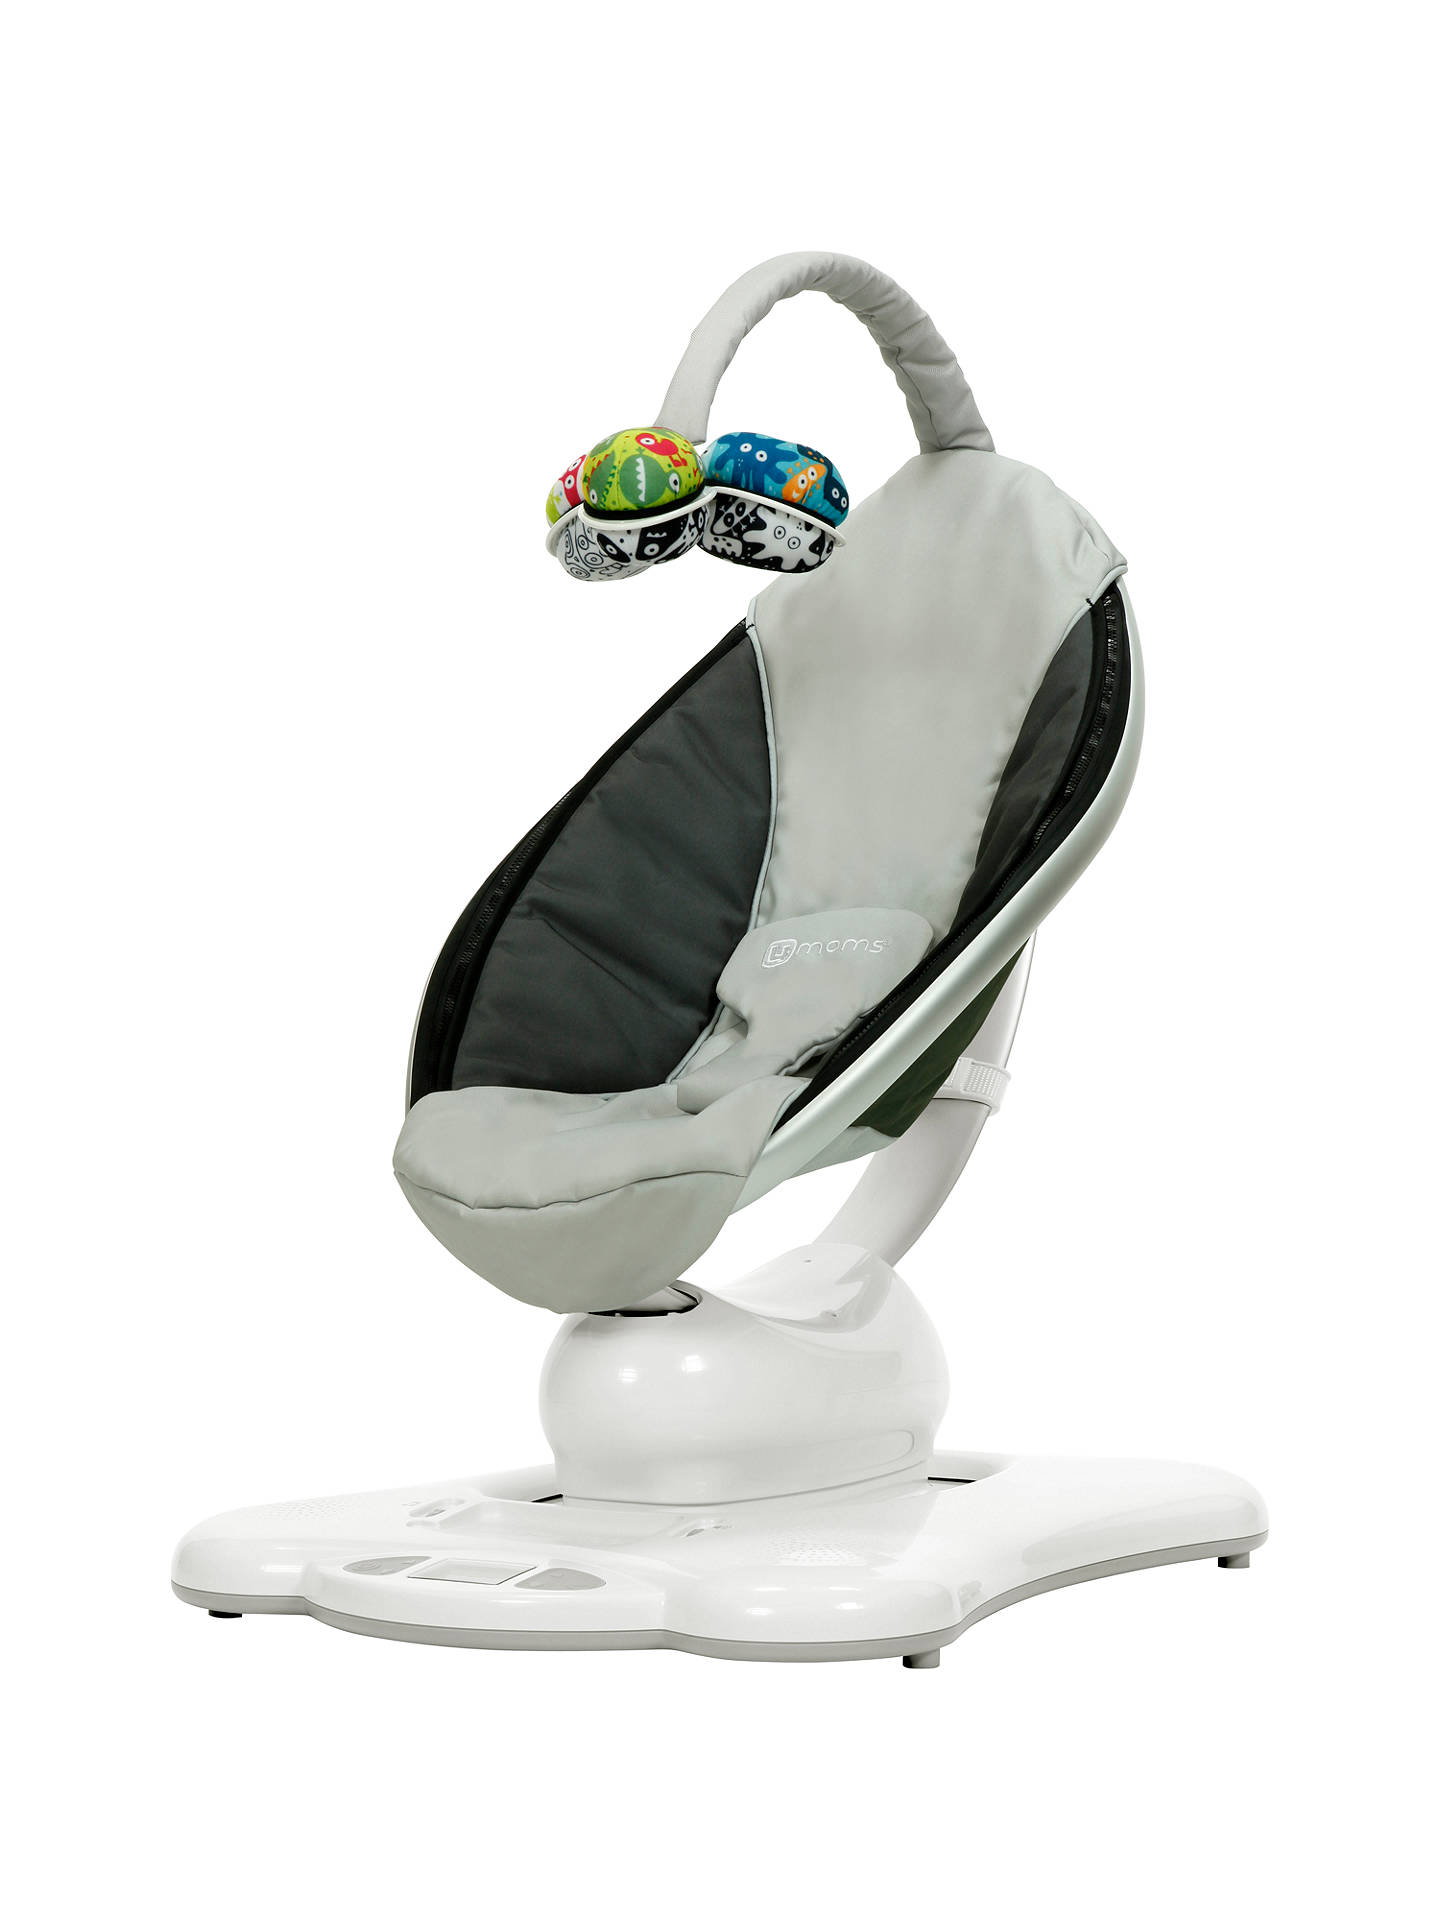 Buy 4moms mamaRoo Bouncer, Silver Online at johnlewis.com